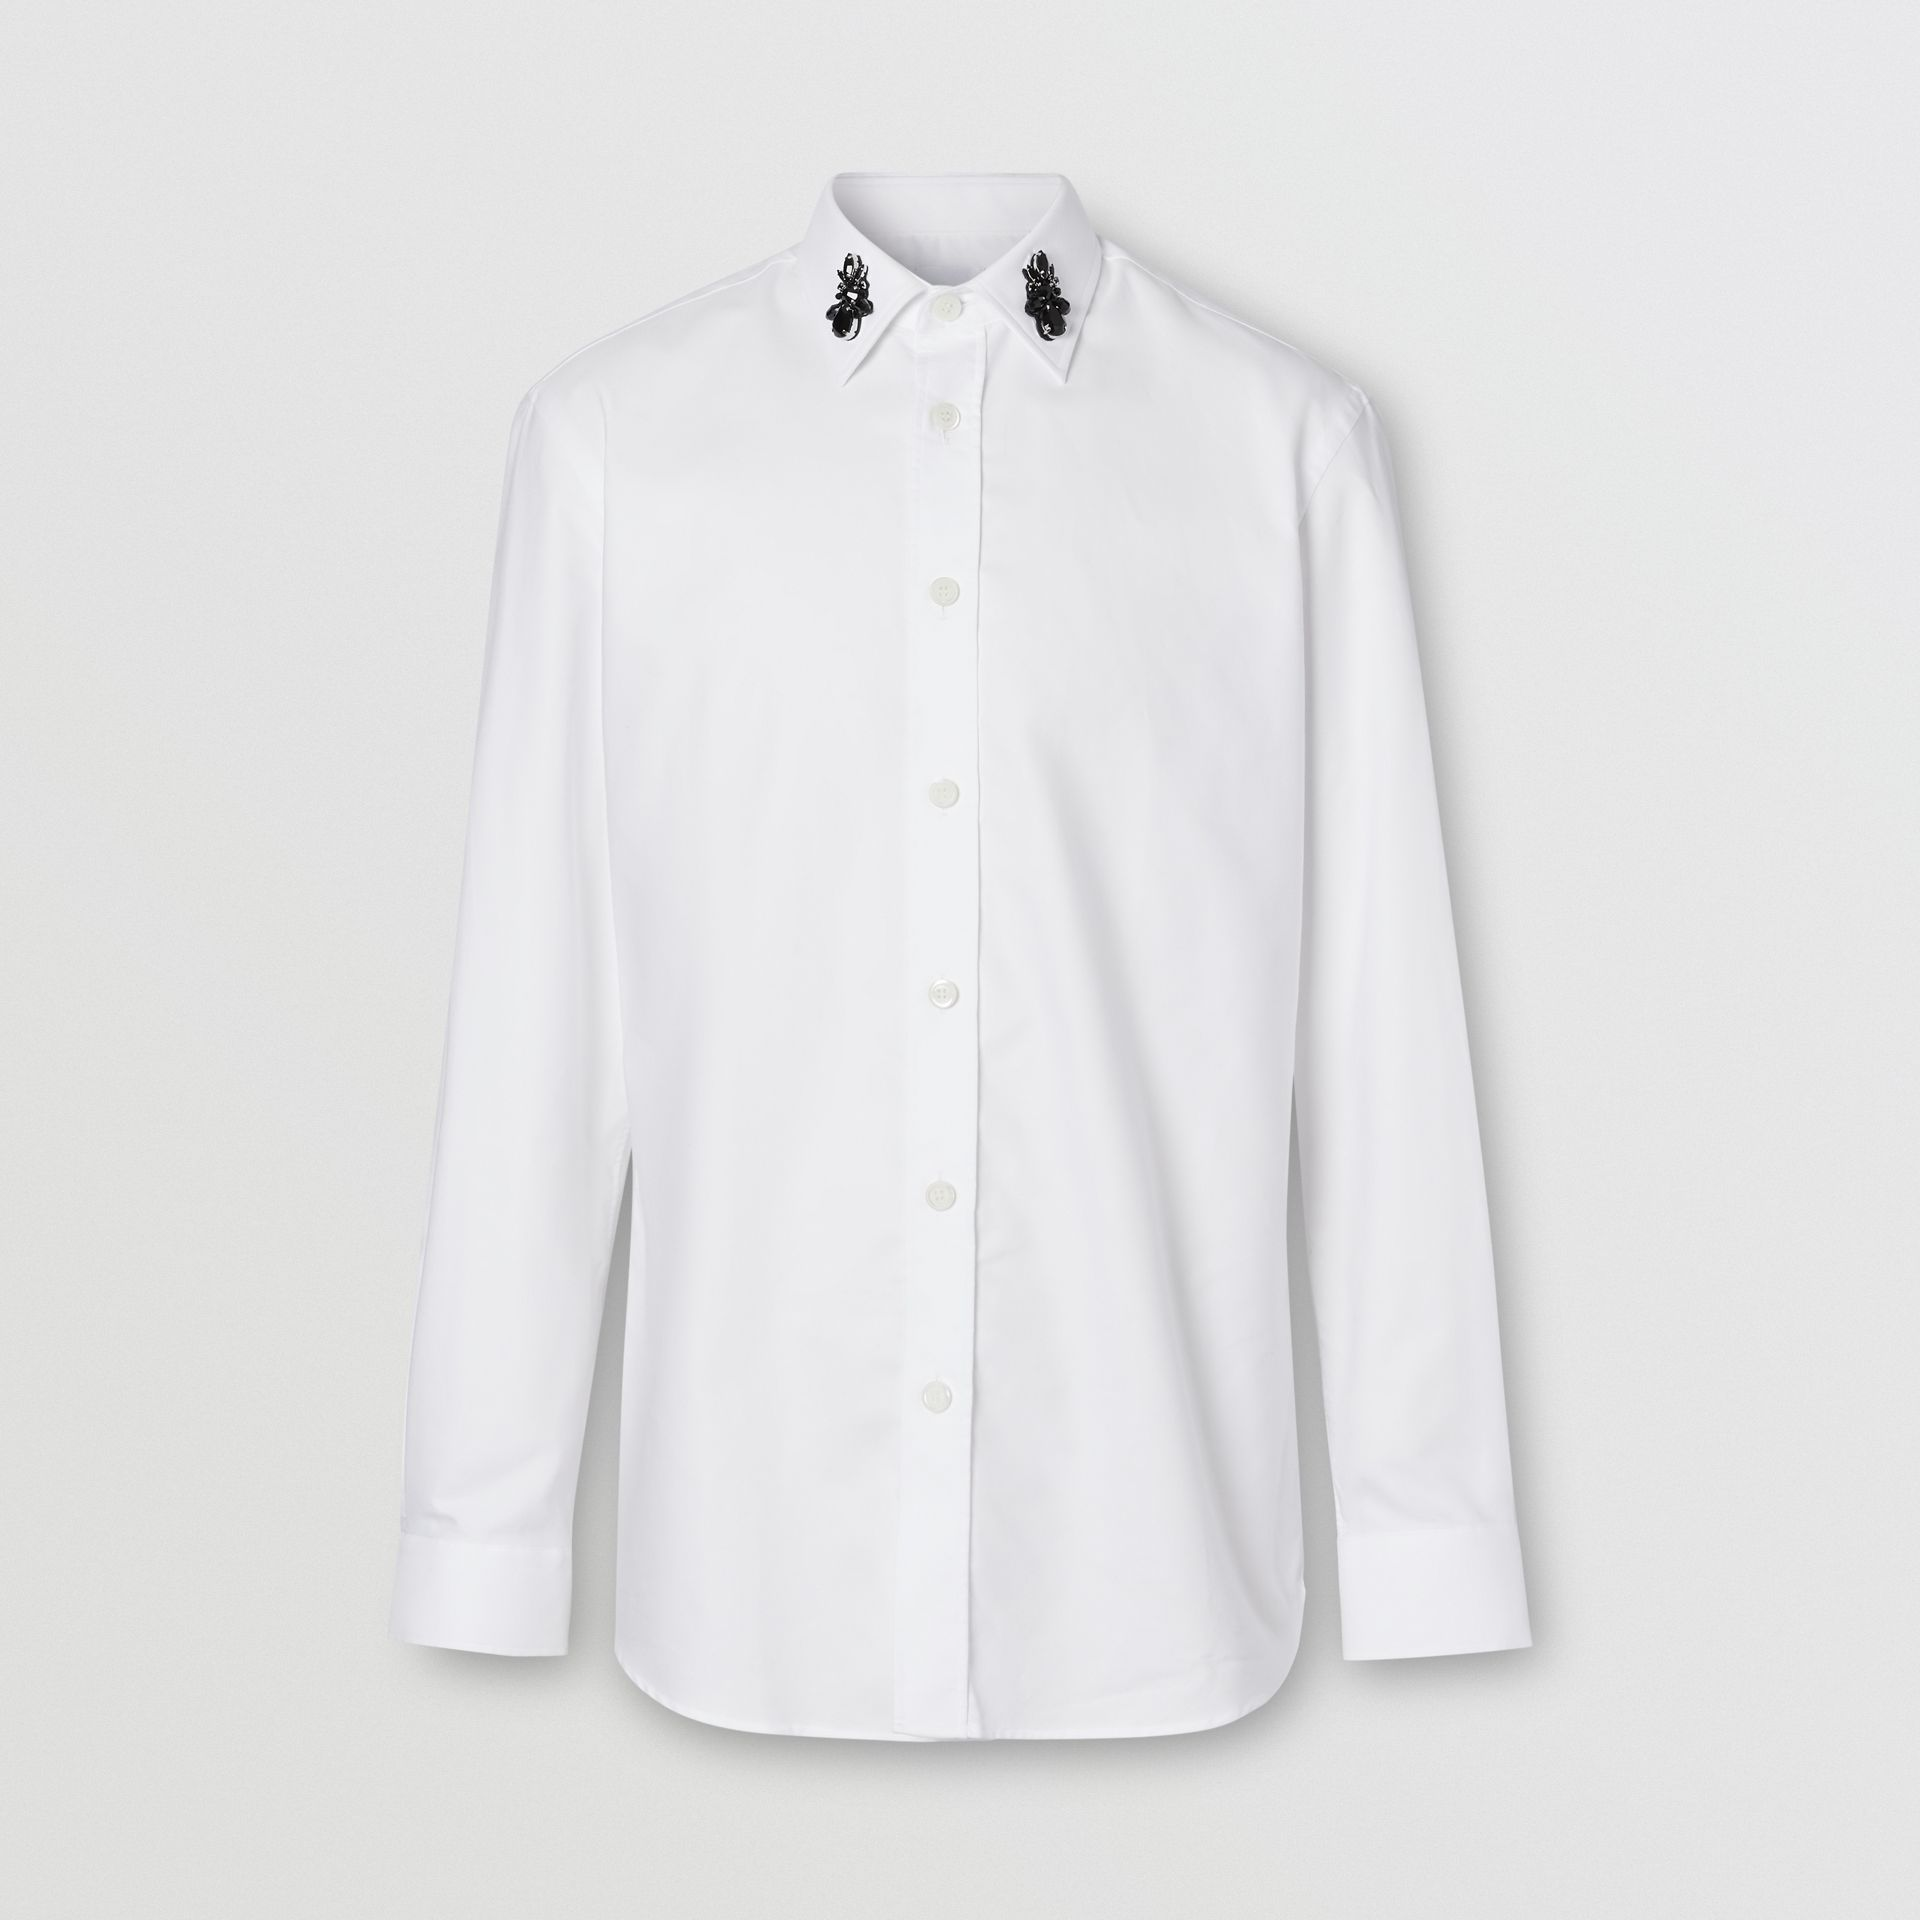 Classic Fit Crystal Detail Cotton Oxford Dress Shirt in White - Men | Burberry - gallery image 3